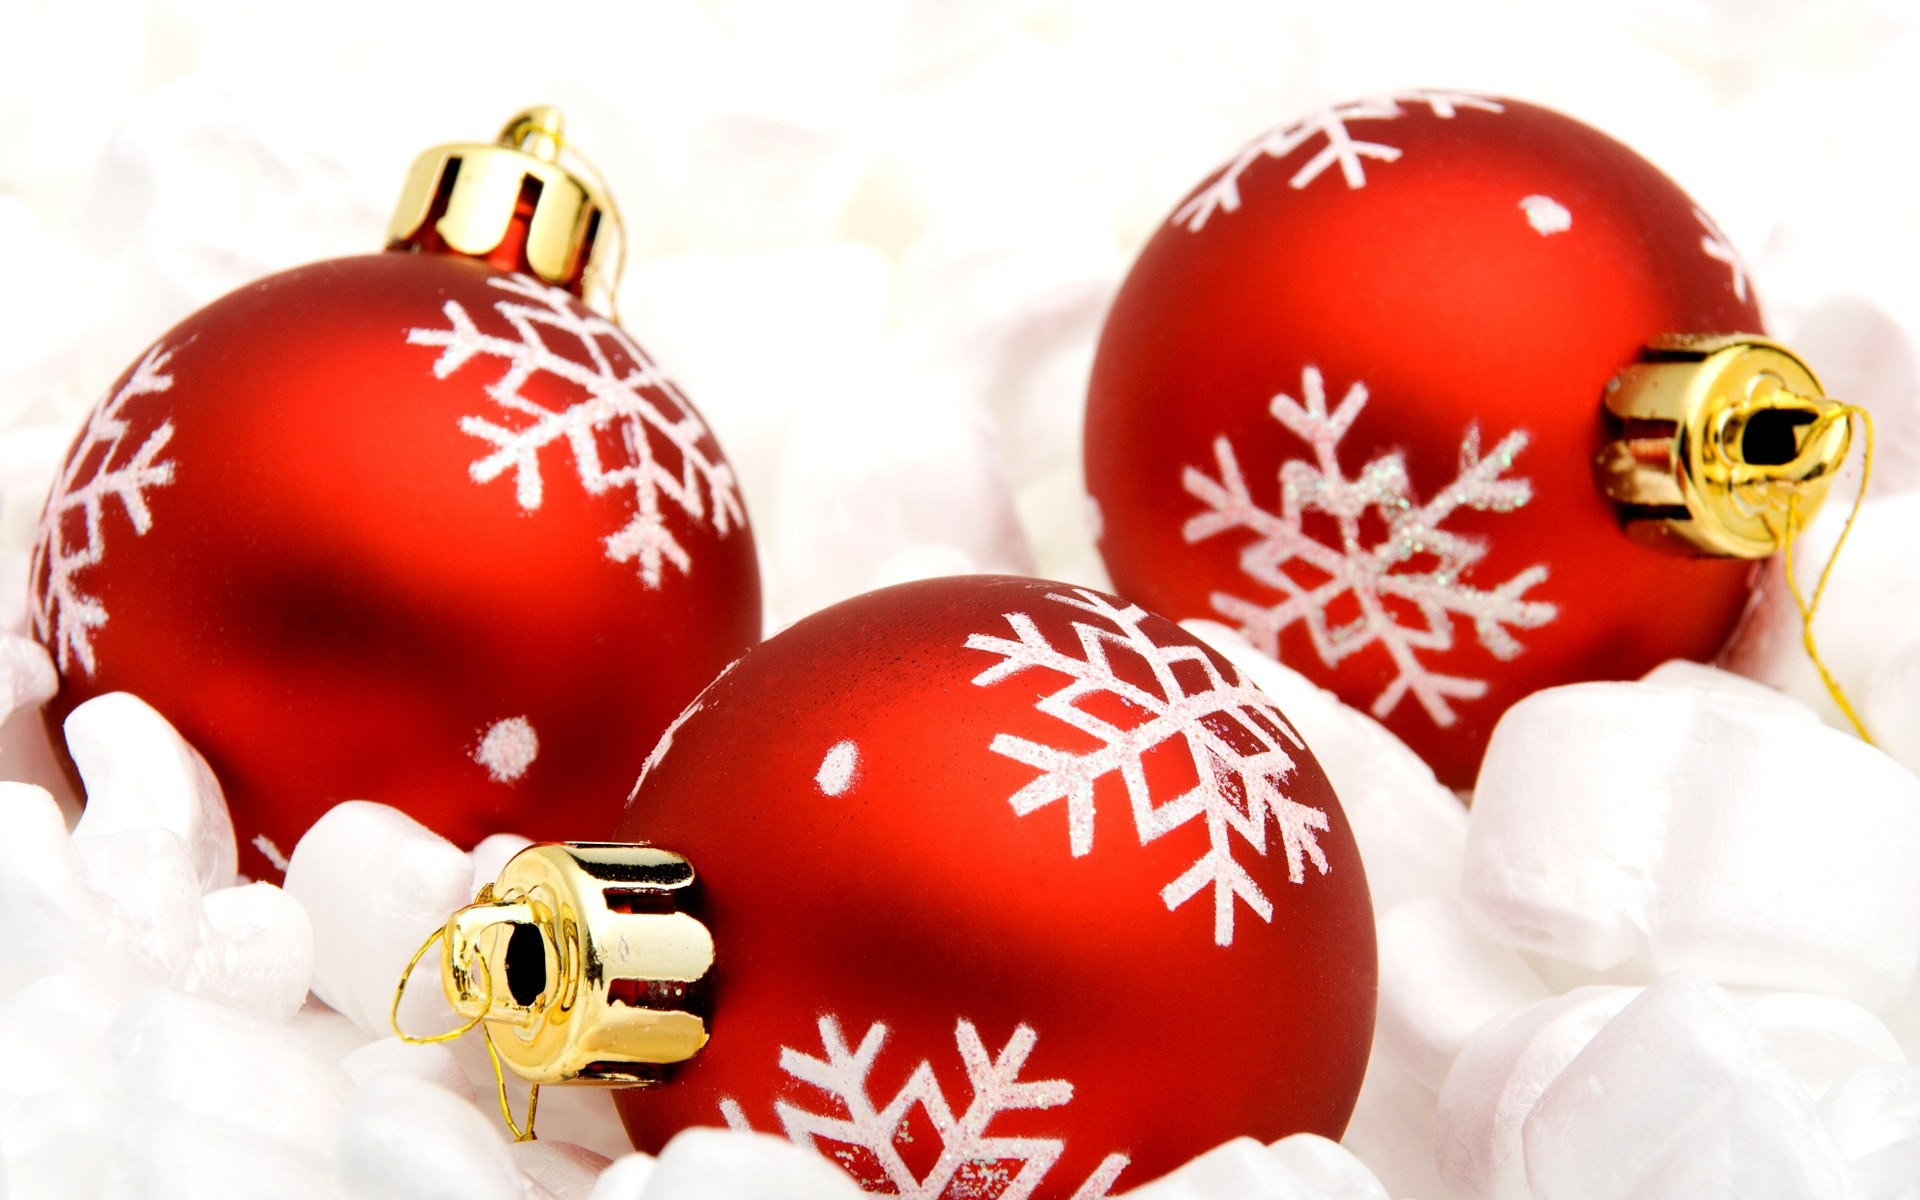 Elegant Red Christmas ornaments Wallpaper 8567 1920 X 1200 Red Christmas Decorations Of Fresh 42 Images Red Christmas Decorations